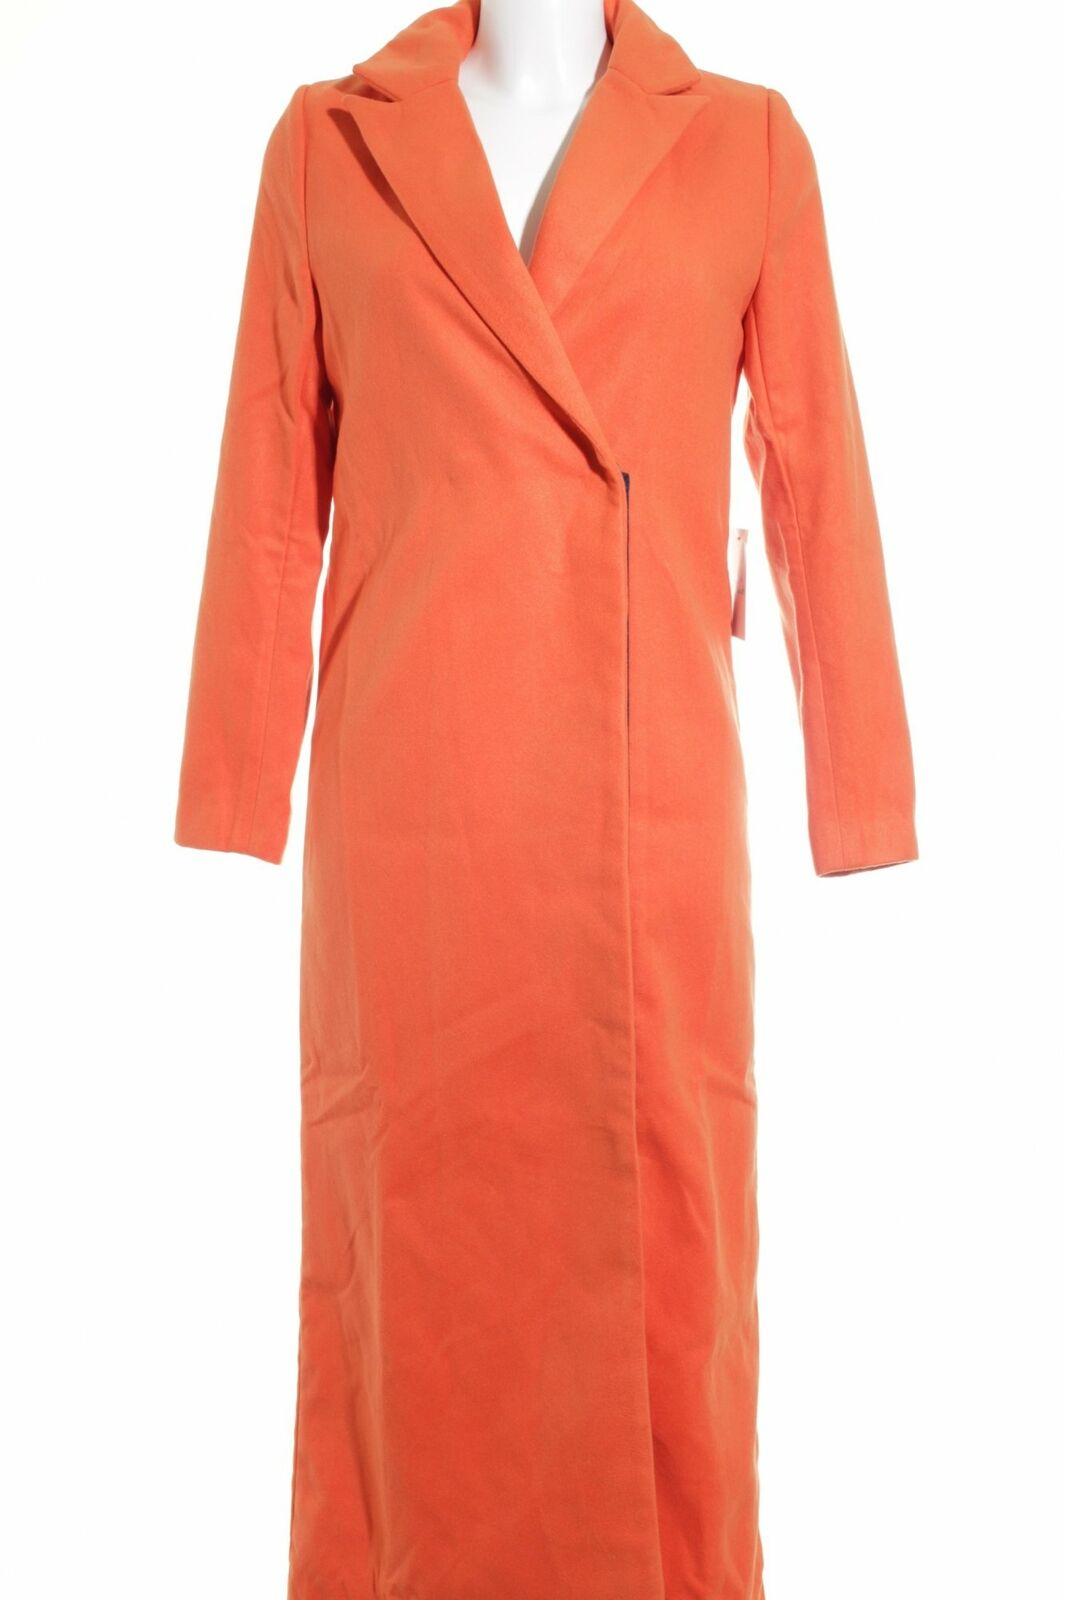 Wollmantel Orange Business-Look Damen Gr. DE 36 Mantel Mantel Mantel Coat Wool Coat | Modisch